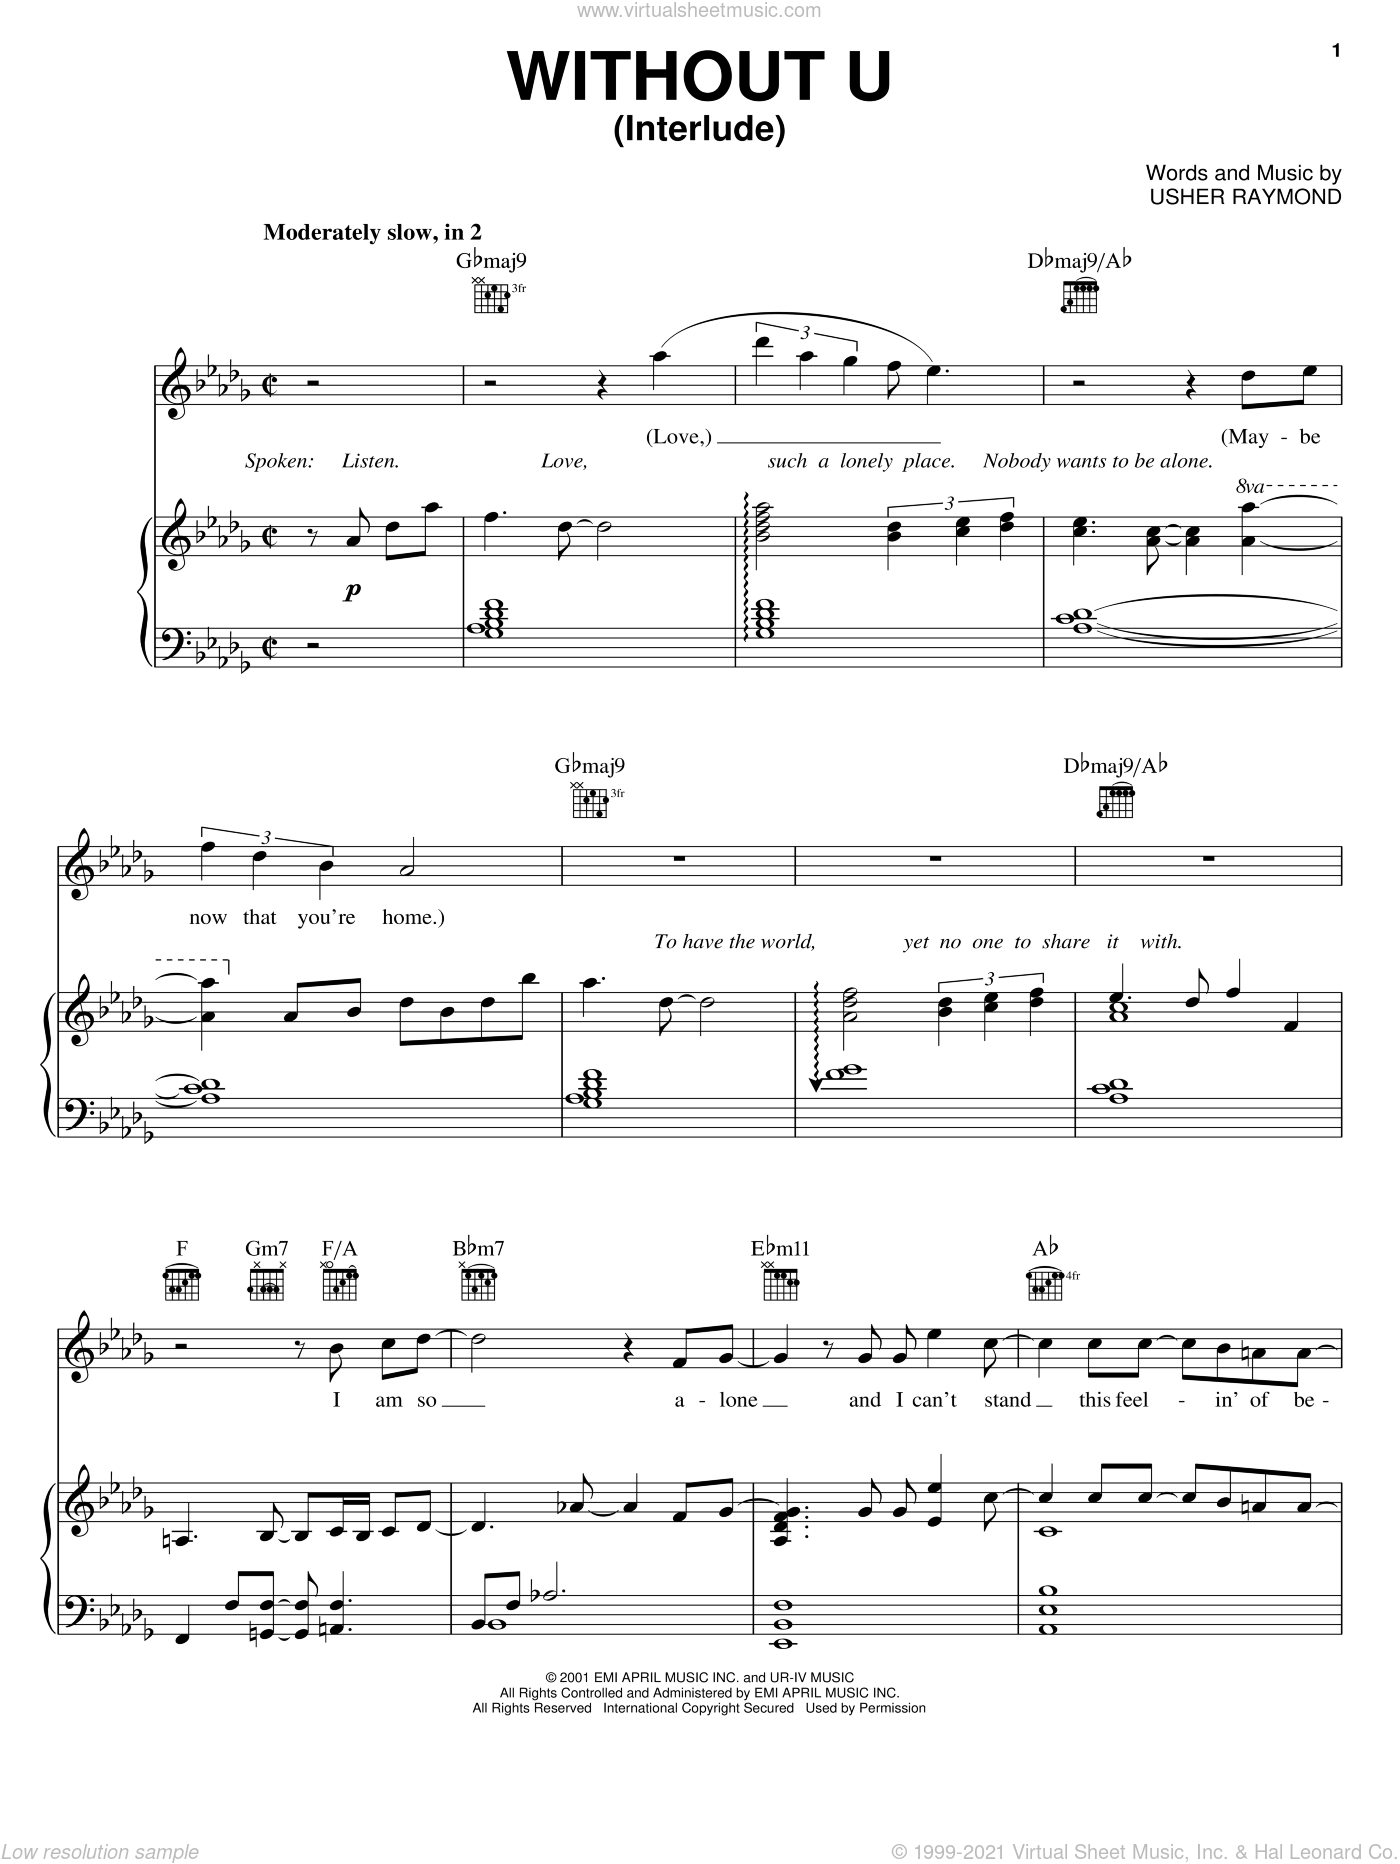 Without U (Interlude) sheet music for voice, piano or guitar by Usher Raymond